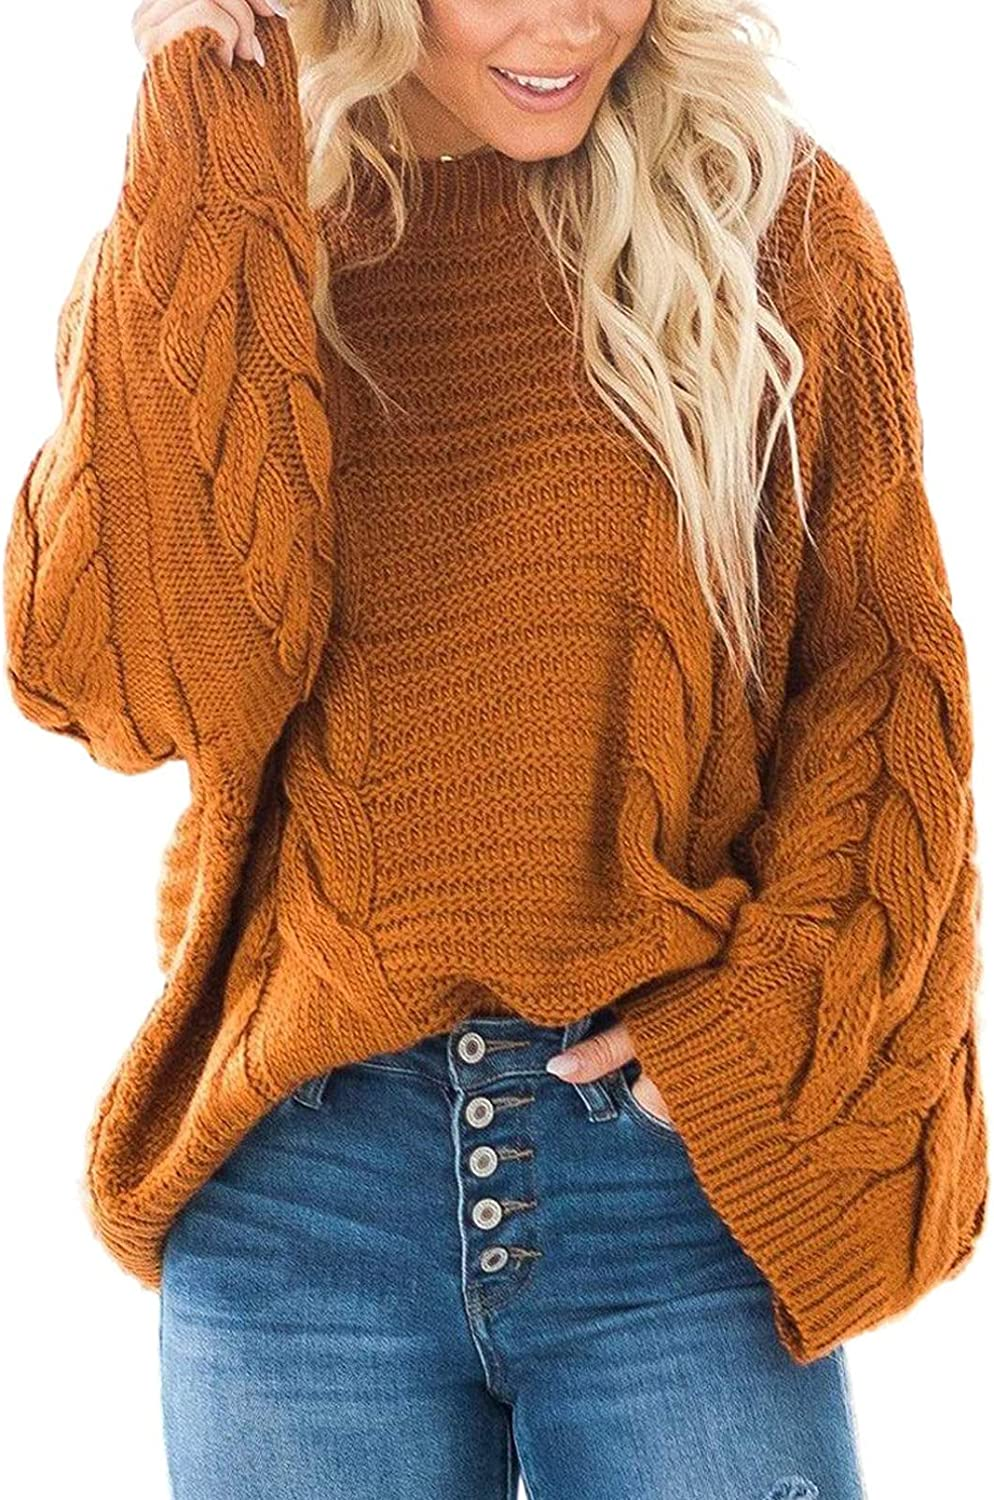 Ecrocoo Women's Sexy Off Shoulder Cable Knit Oversized Sweater Long Sleeve Loose Fall Pullover Jumper